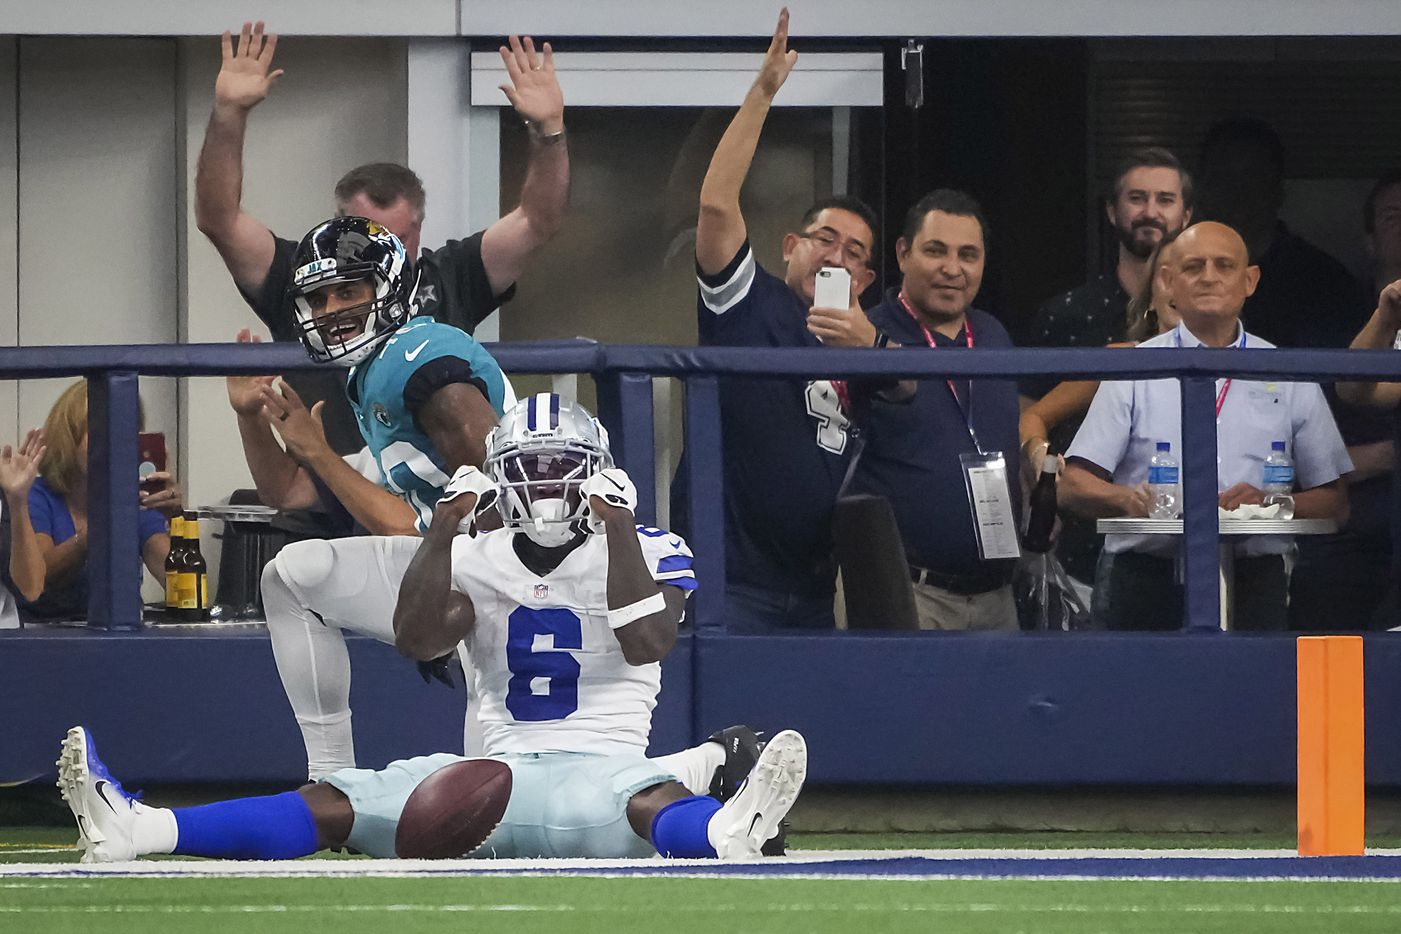 Dallas Cowboys wide receiver Johnnie Dixon (6) celebrates after catching a touchdown pass past Jacksonville Jaguars defensive back Brandon Rusnak (40) during the second half of a preseason NFL football game at AT&T Stadium on Sunday, Aug. 29, 2021, in Arlington. (Smiley N. Pool/The Dallas Morning News)